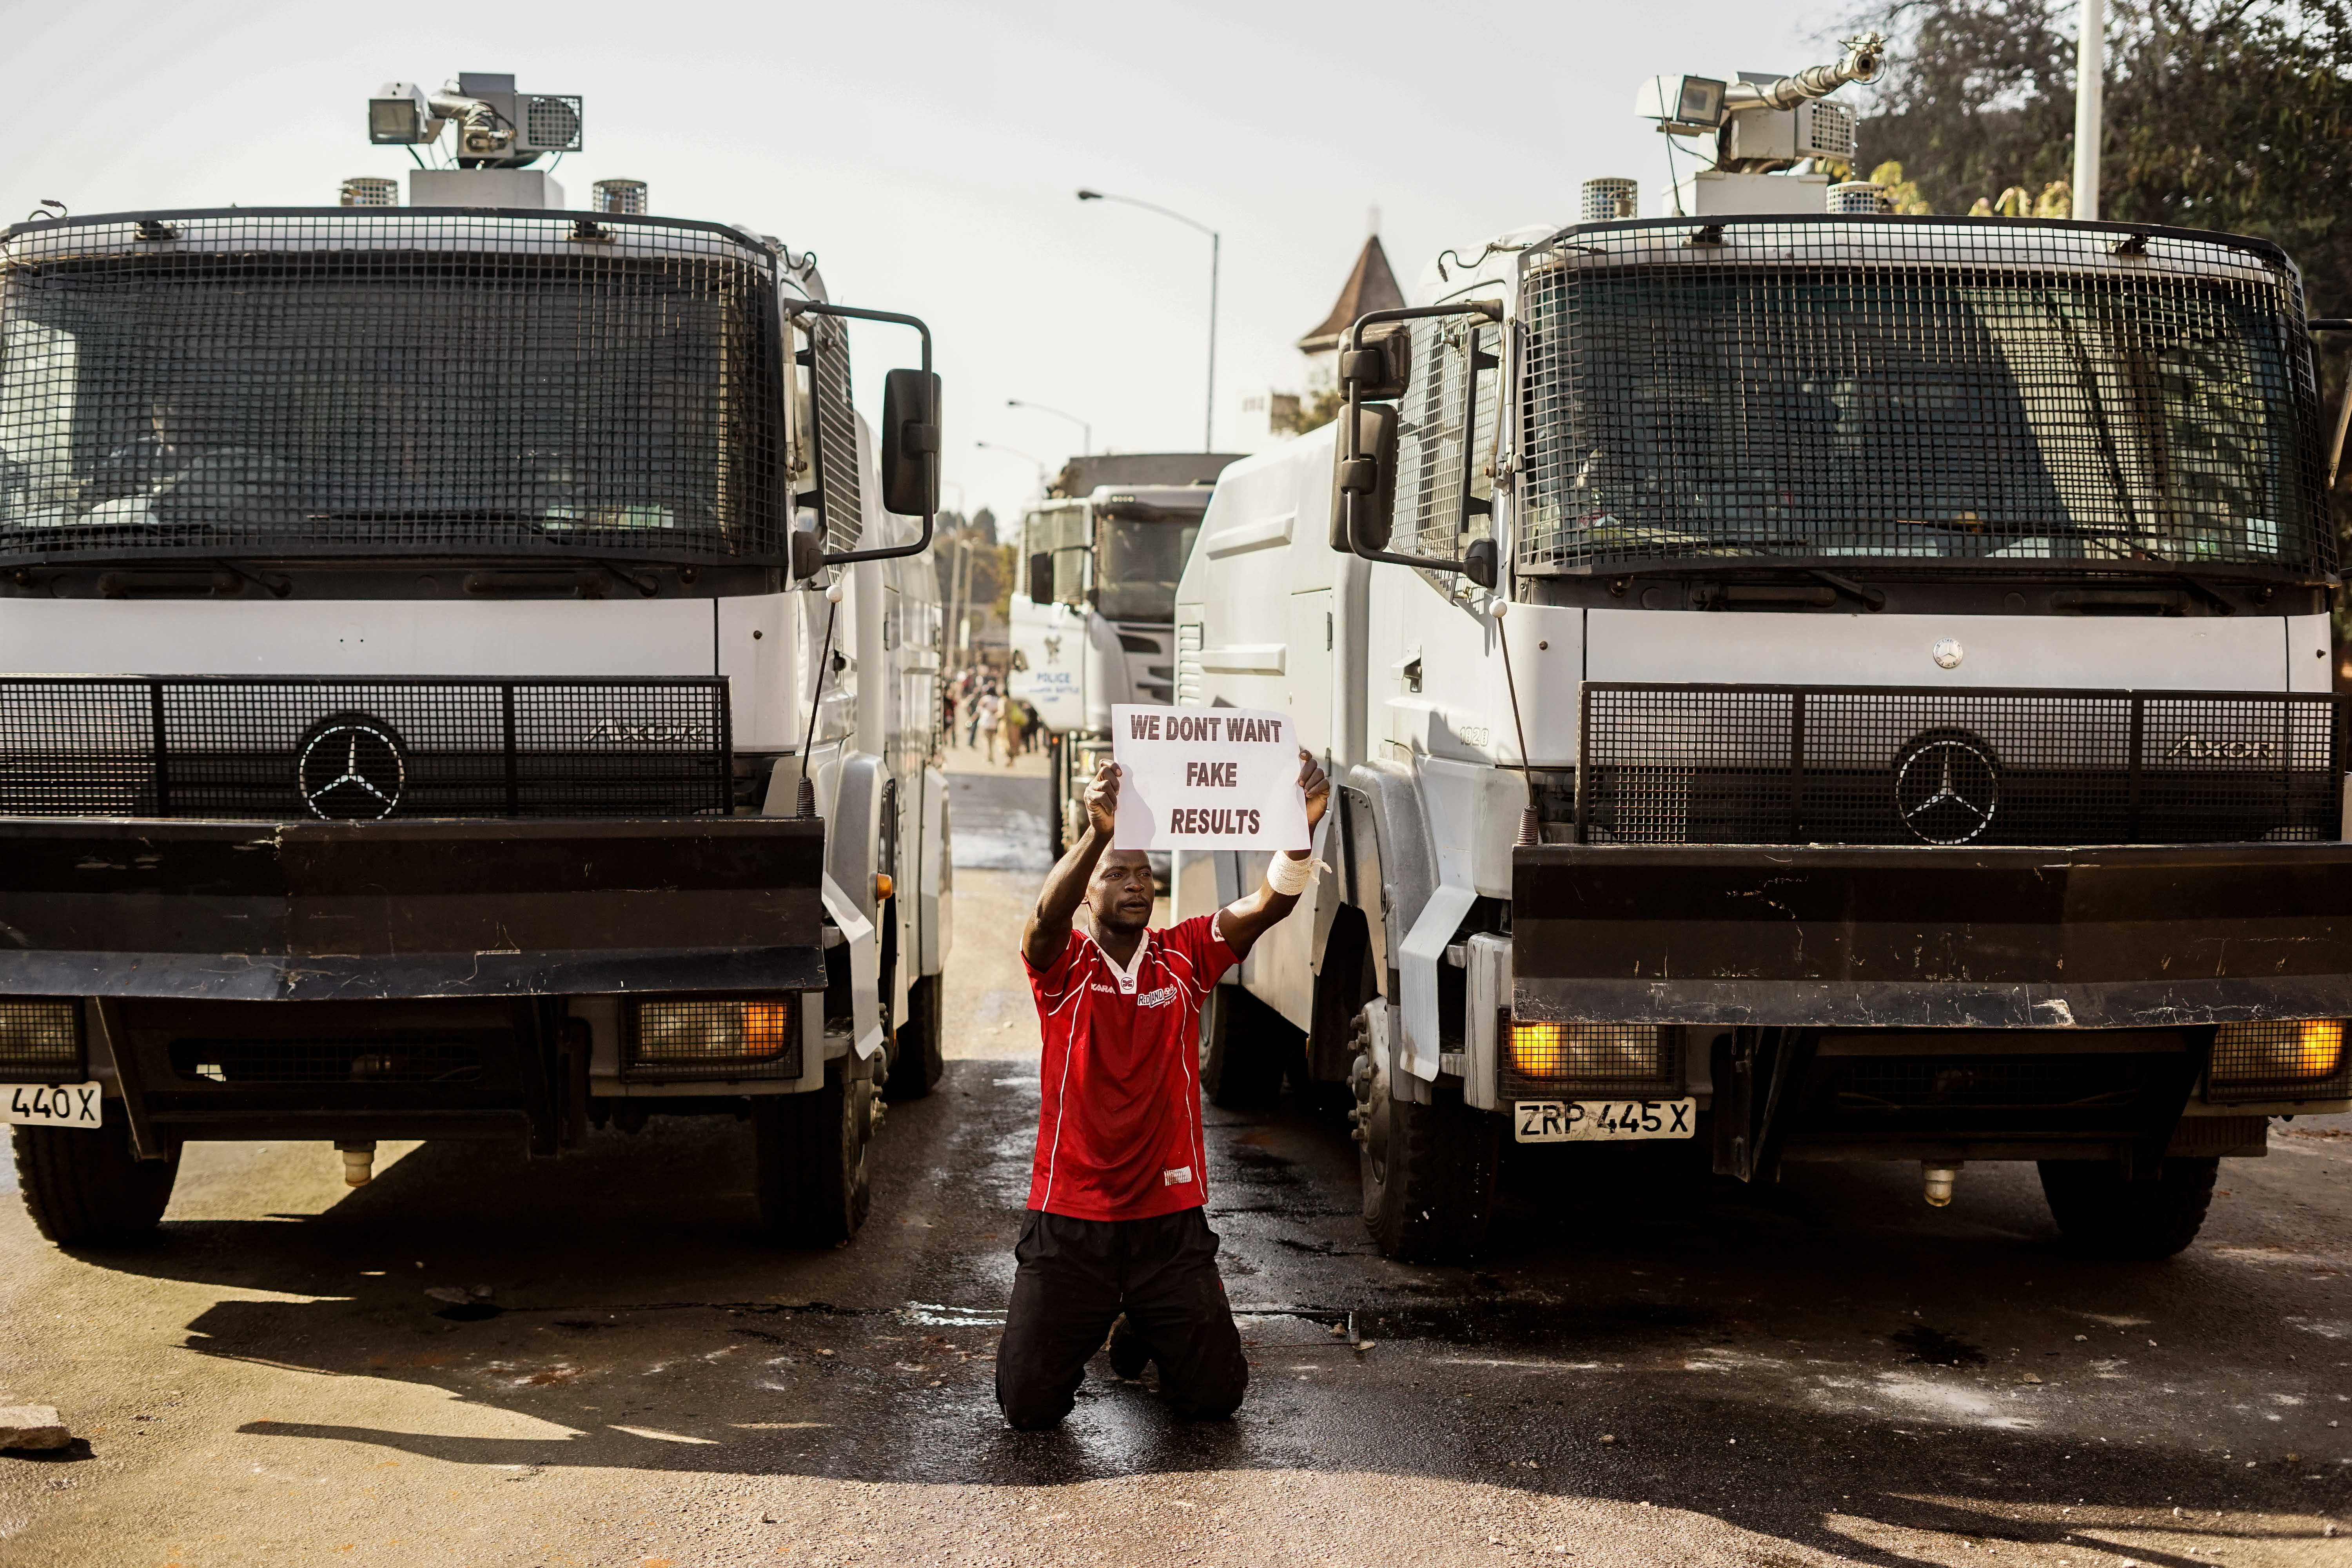 A demonstrator holds a placard as he kneels in front of police water cannons, on August 1 2018, in Harare as protests erupted over alleged fraud in the country's election. - Protests in Zimbabwe's historic elections turned bloody on August 1 as a man was shot dead during demonstrations over alleged vote fraud and the president appealed for calm. The man died after soldiers fired live ammunition during opposition protests in downtown Harare, AFP reporters saw. (Photo by Zinyange AUNTONY / AFP) (Photo credit should read ZINYANGE AUNTONY/AFP/Getty Images)